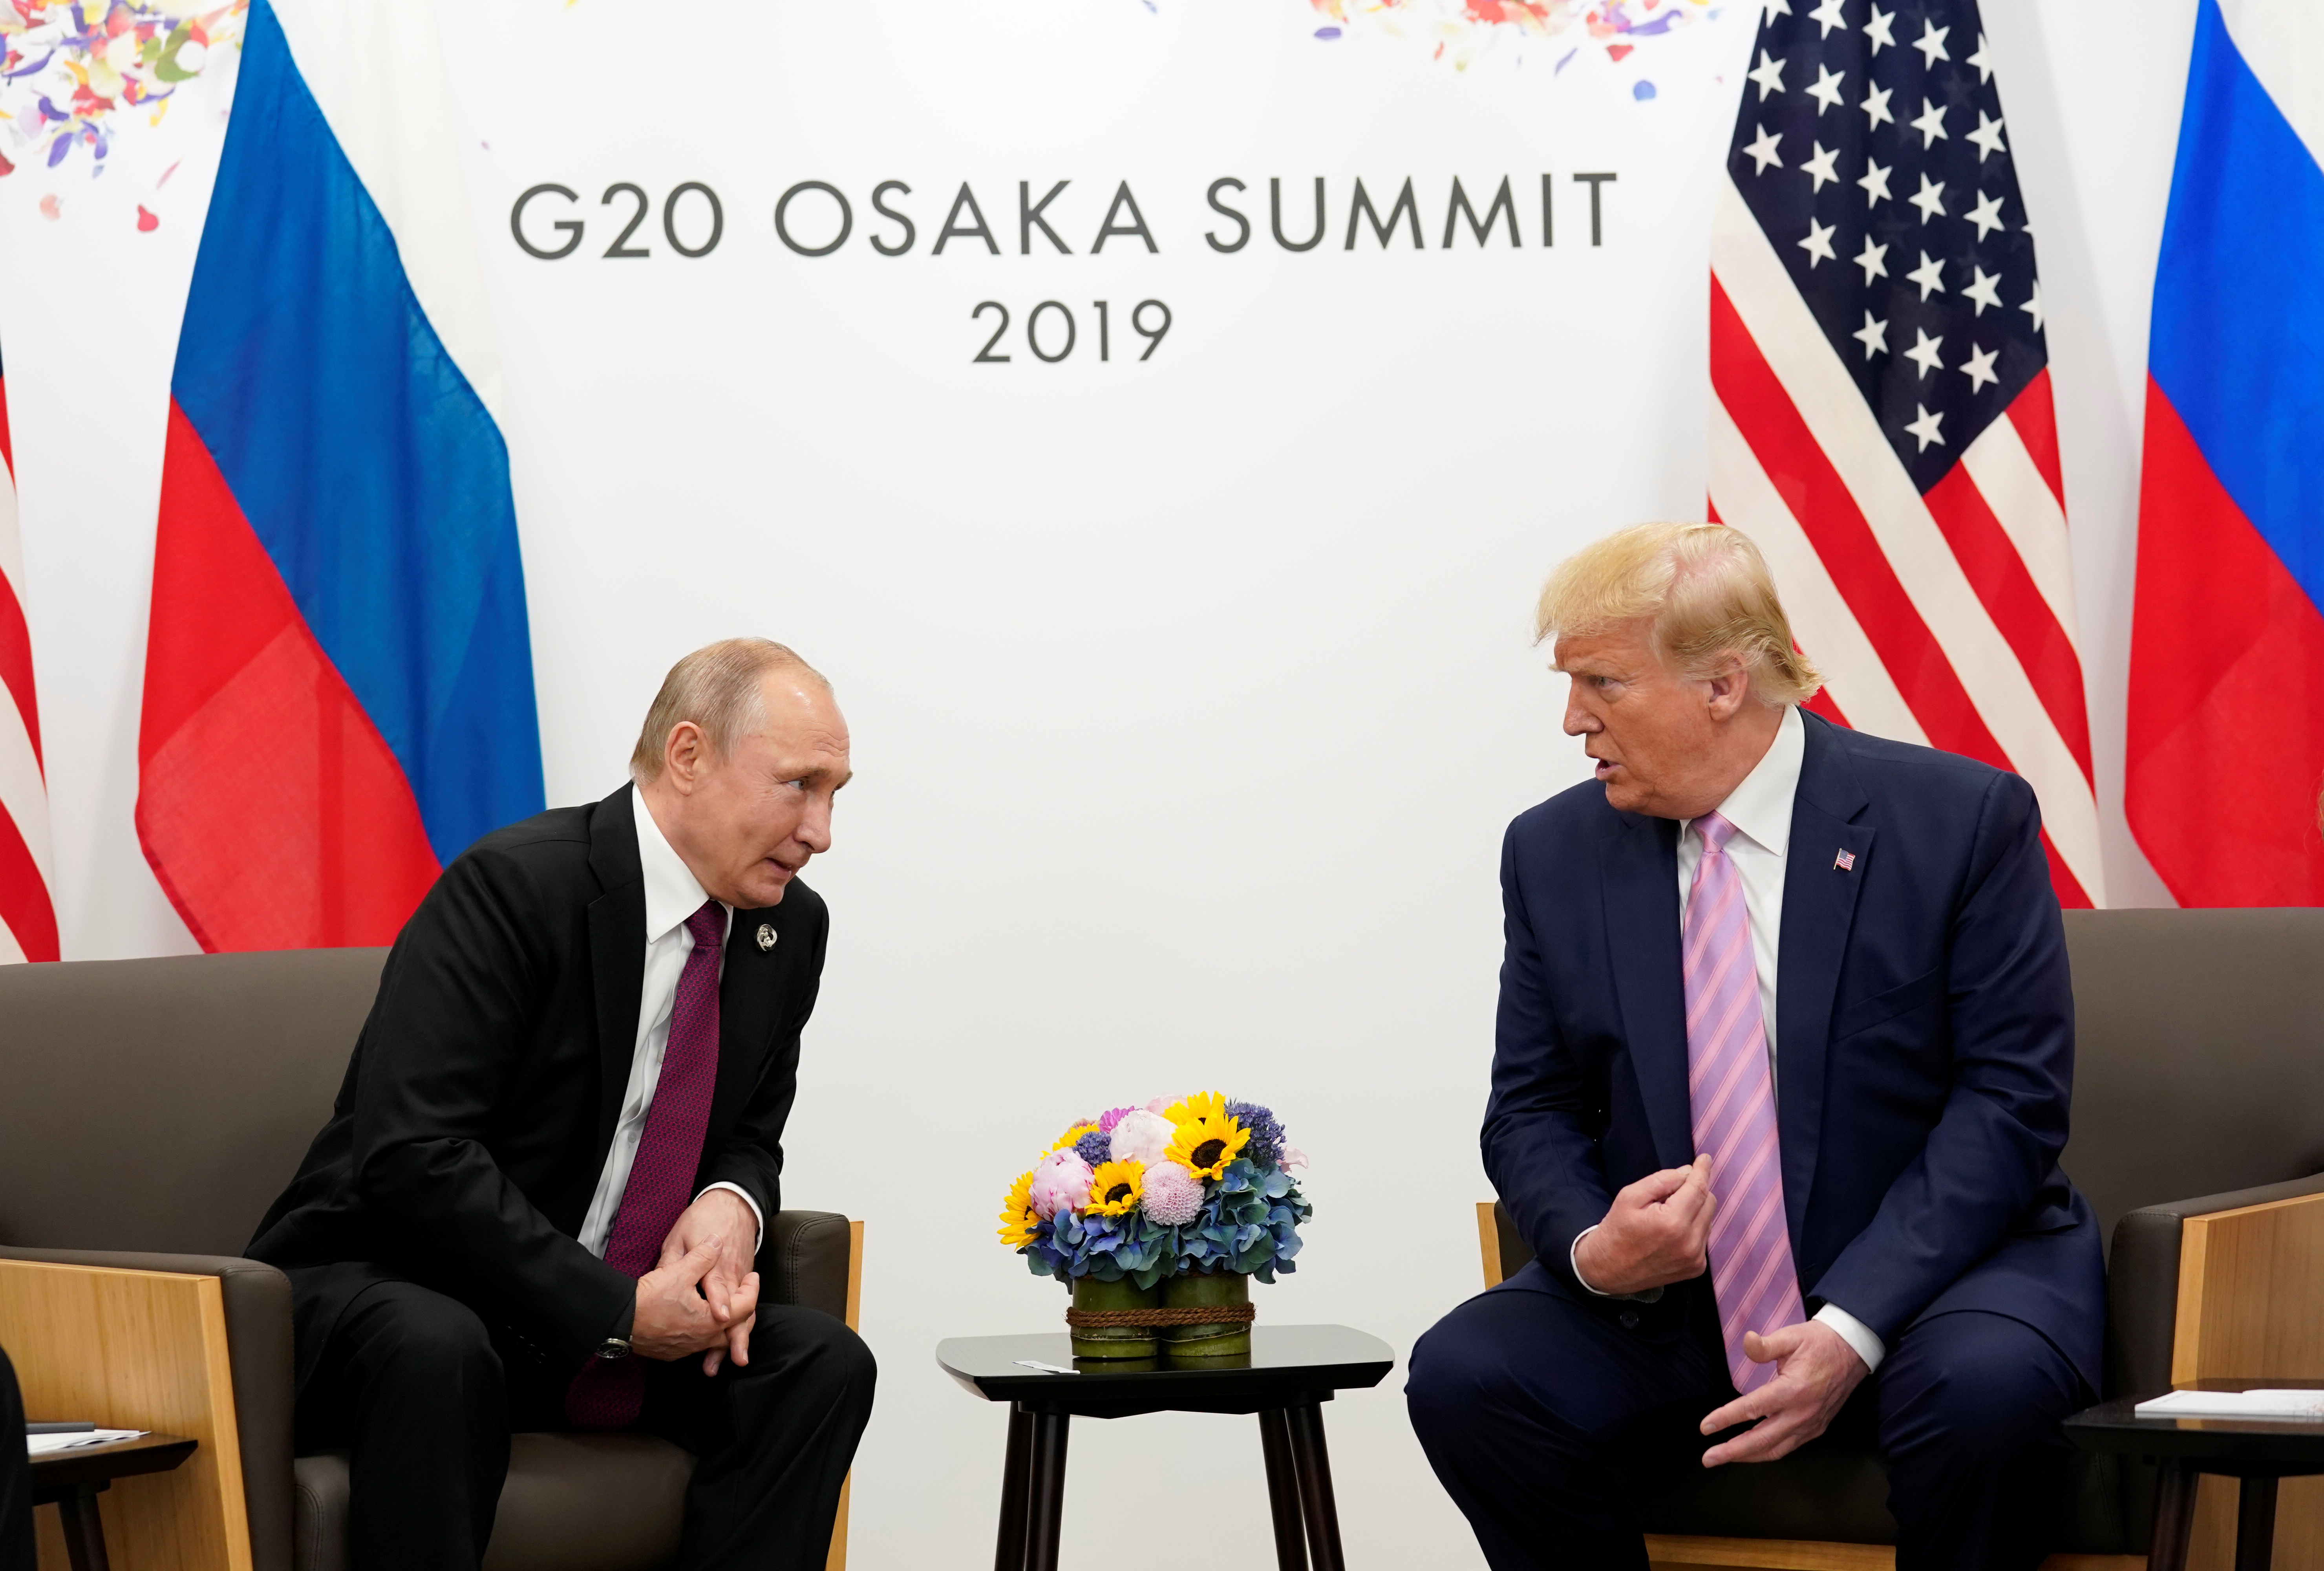 Russia's President Vladimir Putin and U.S. President Donald Trump talk during a bilateral meeting at the G20 leaders summit in Osaka, Japan, June 28, 2019. REUTERS/Kevin Lamarque